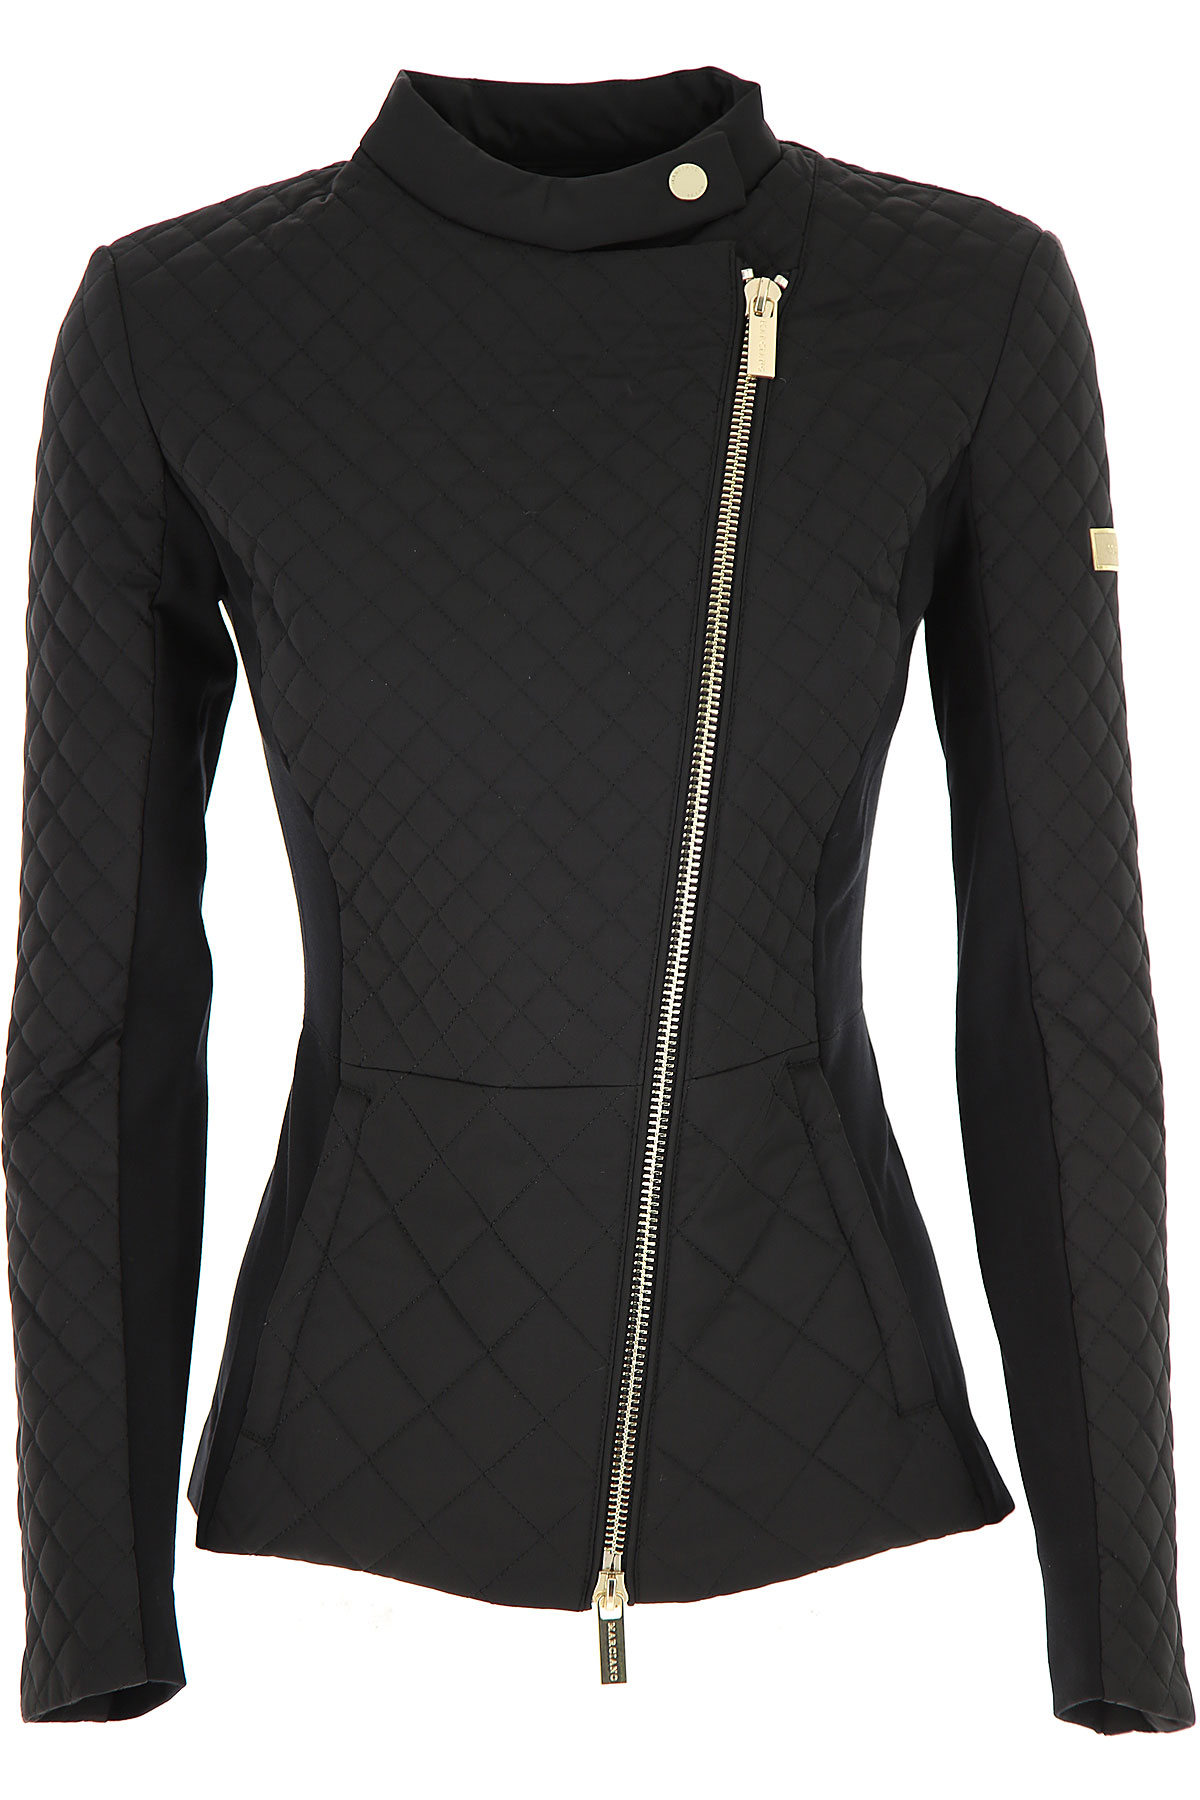 Guess Jacket for Women On Sale, Black, polyester, 2019, 6 8